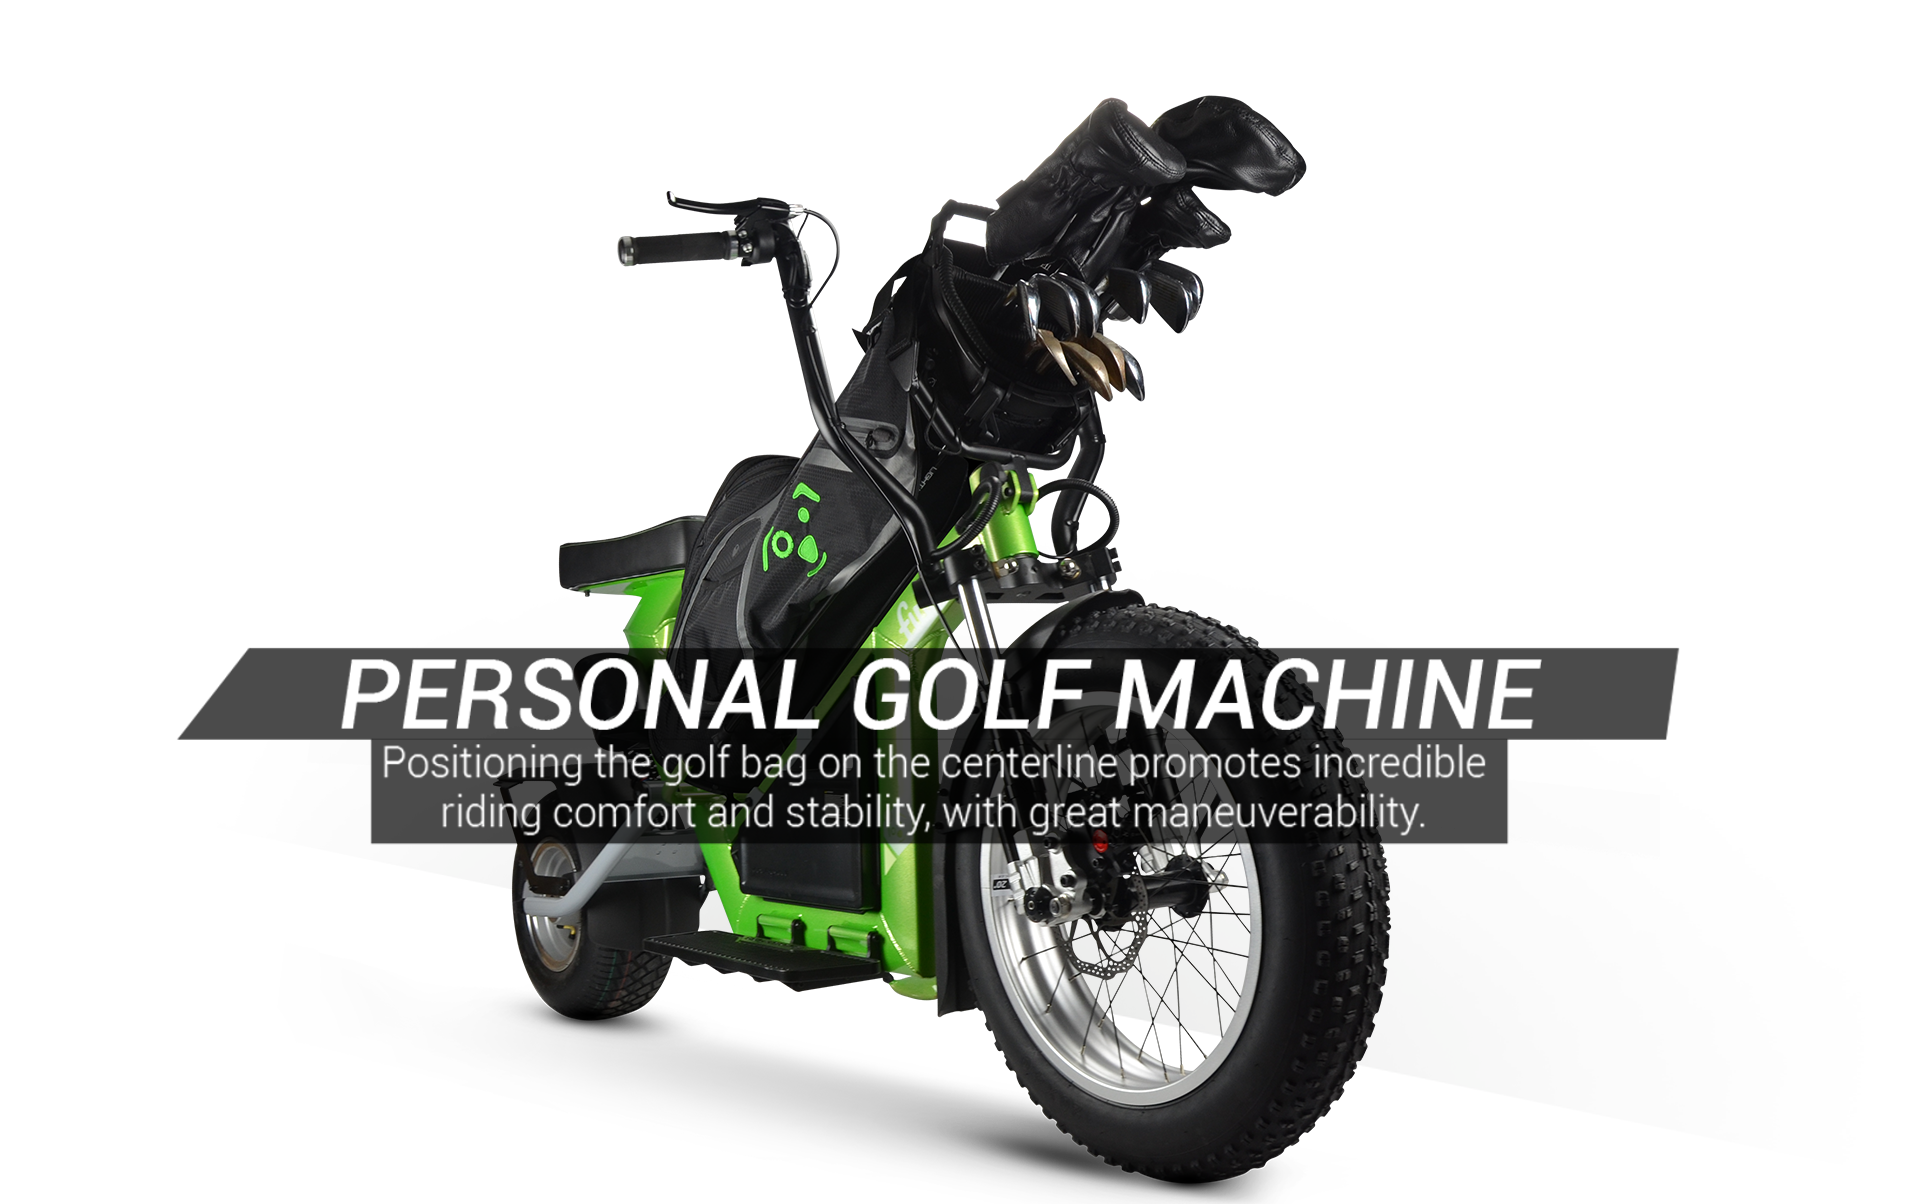 Finn Single Rider Golf Cycle is a Personal Golf Machine